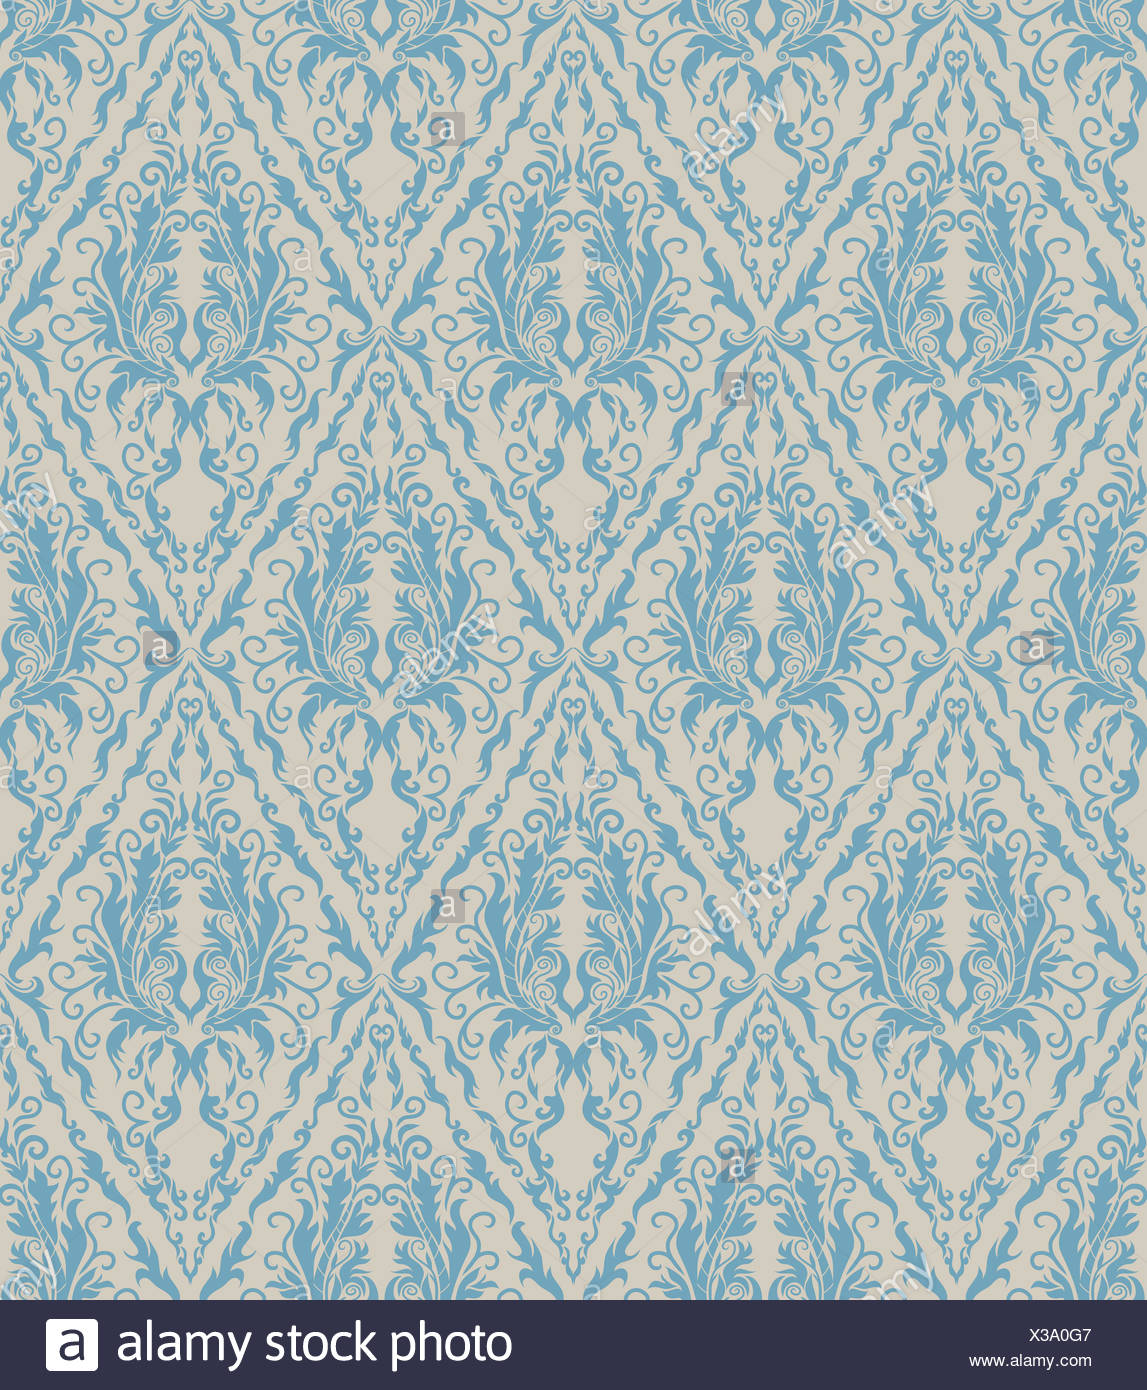 Floral Seamless Vector Royal Beauty Vintage Pattern